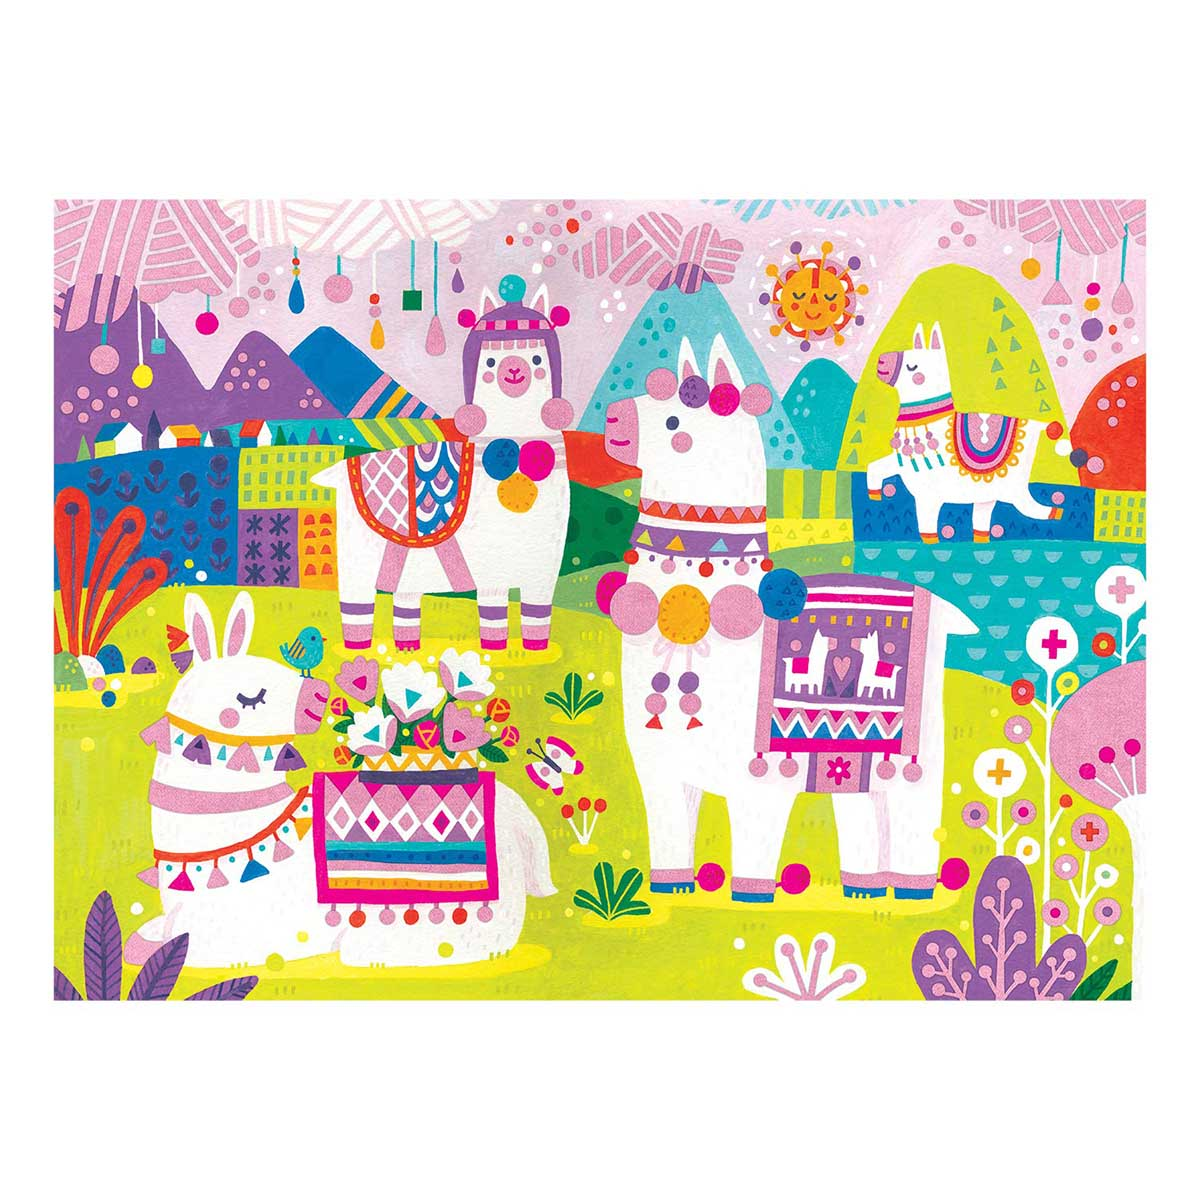 Llama Land Fuzzy Animals Jigsaw Puzzle